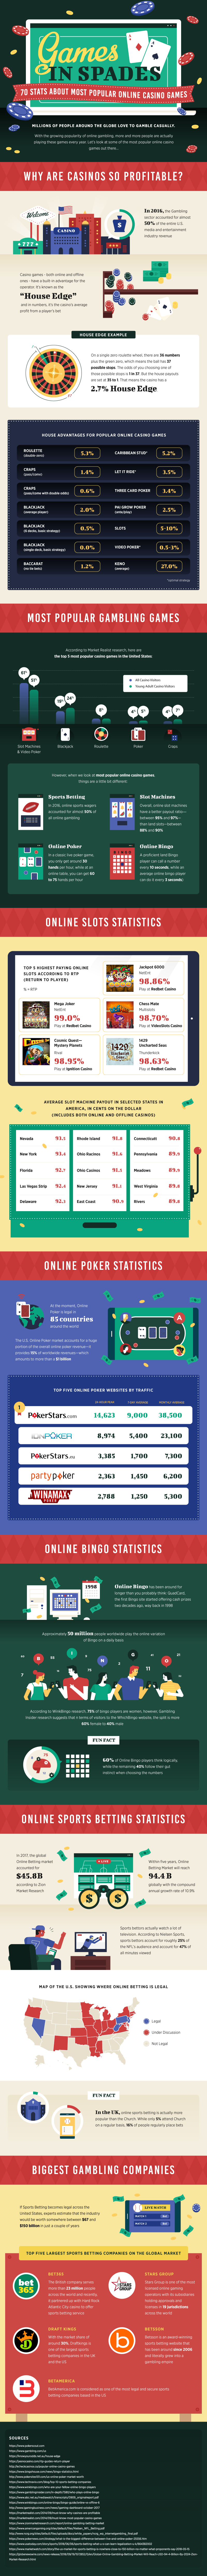 Games-In-Spades-Infographic